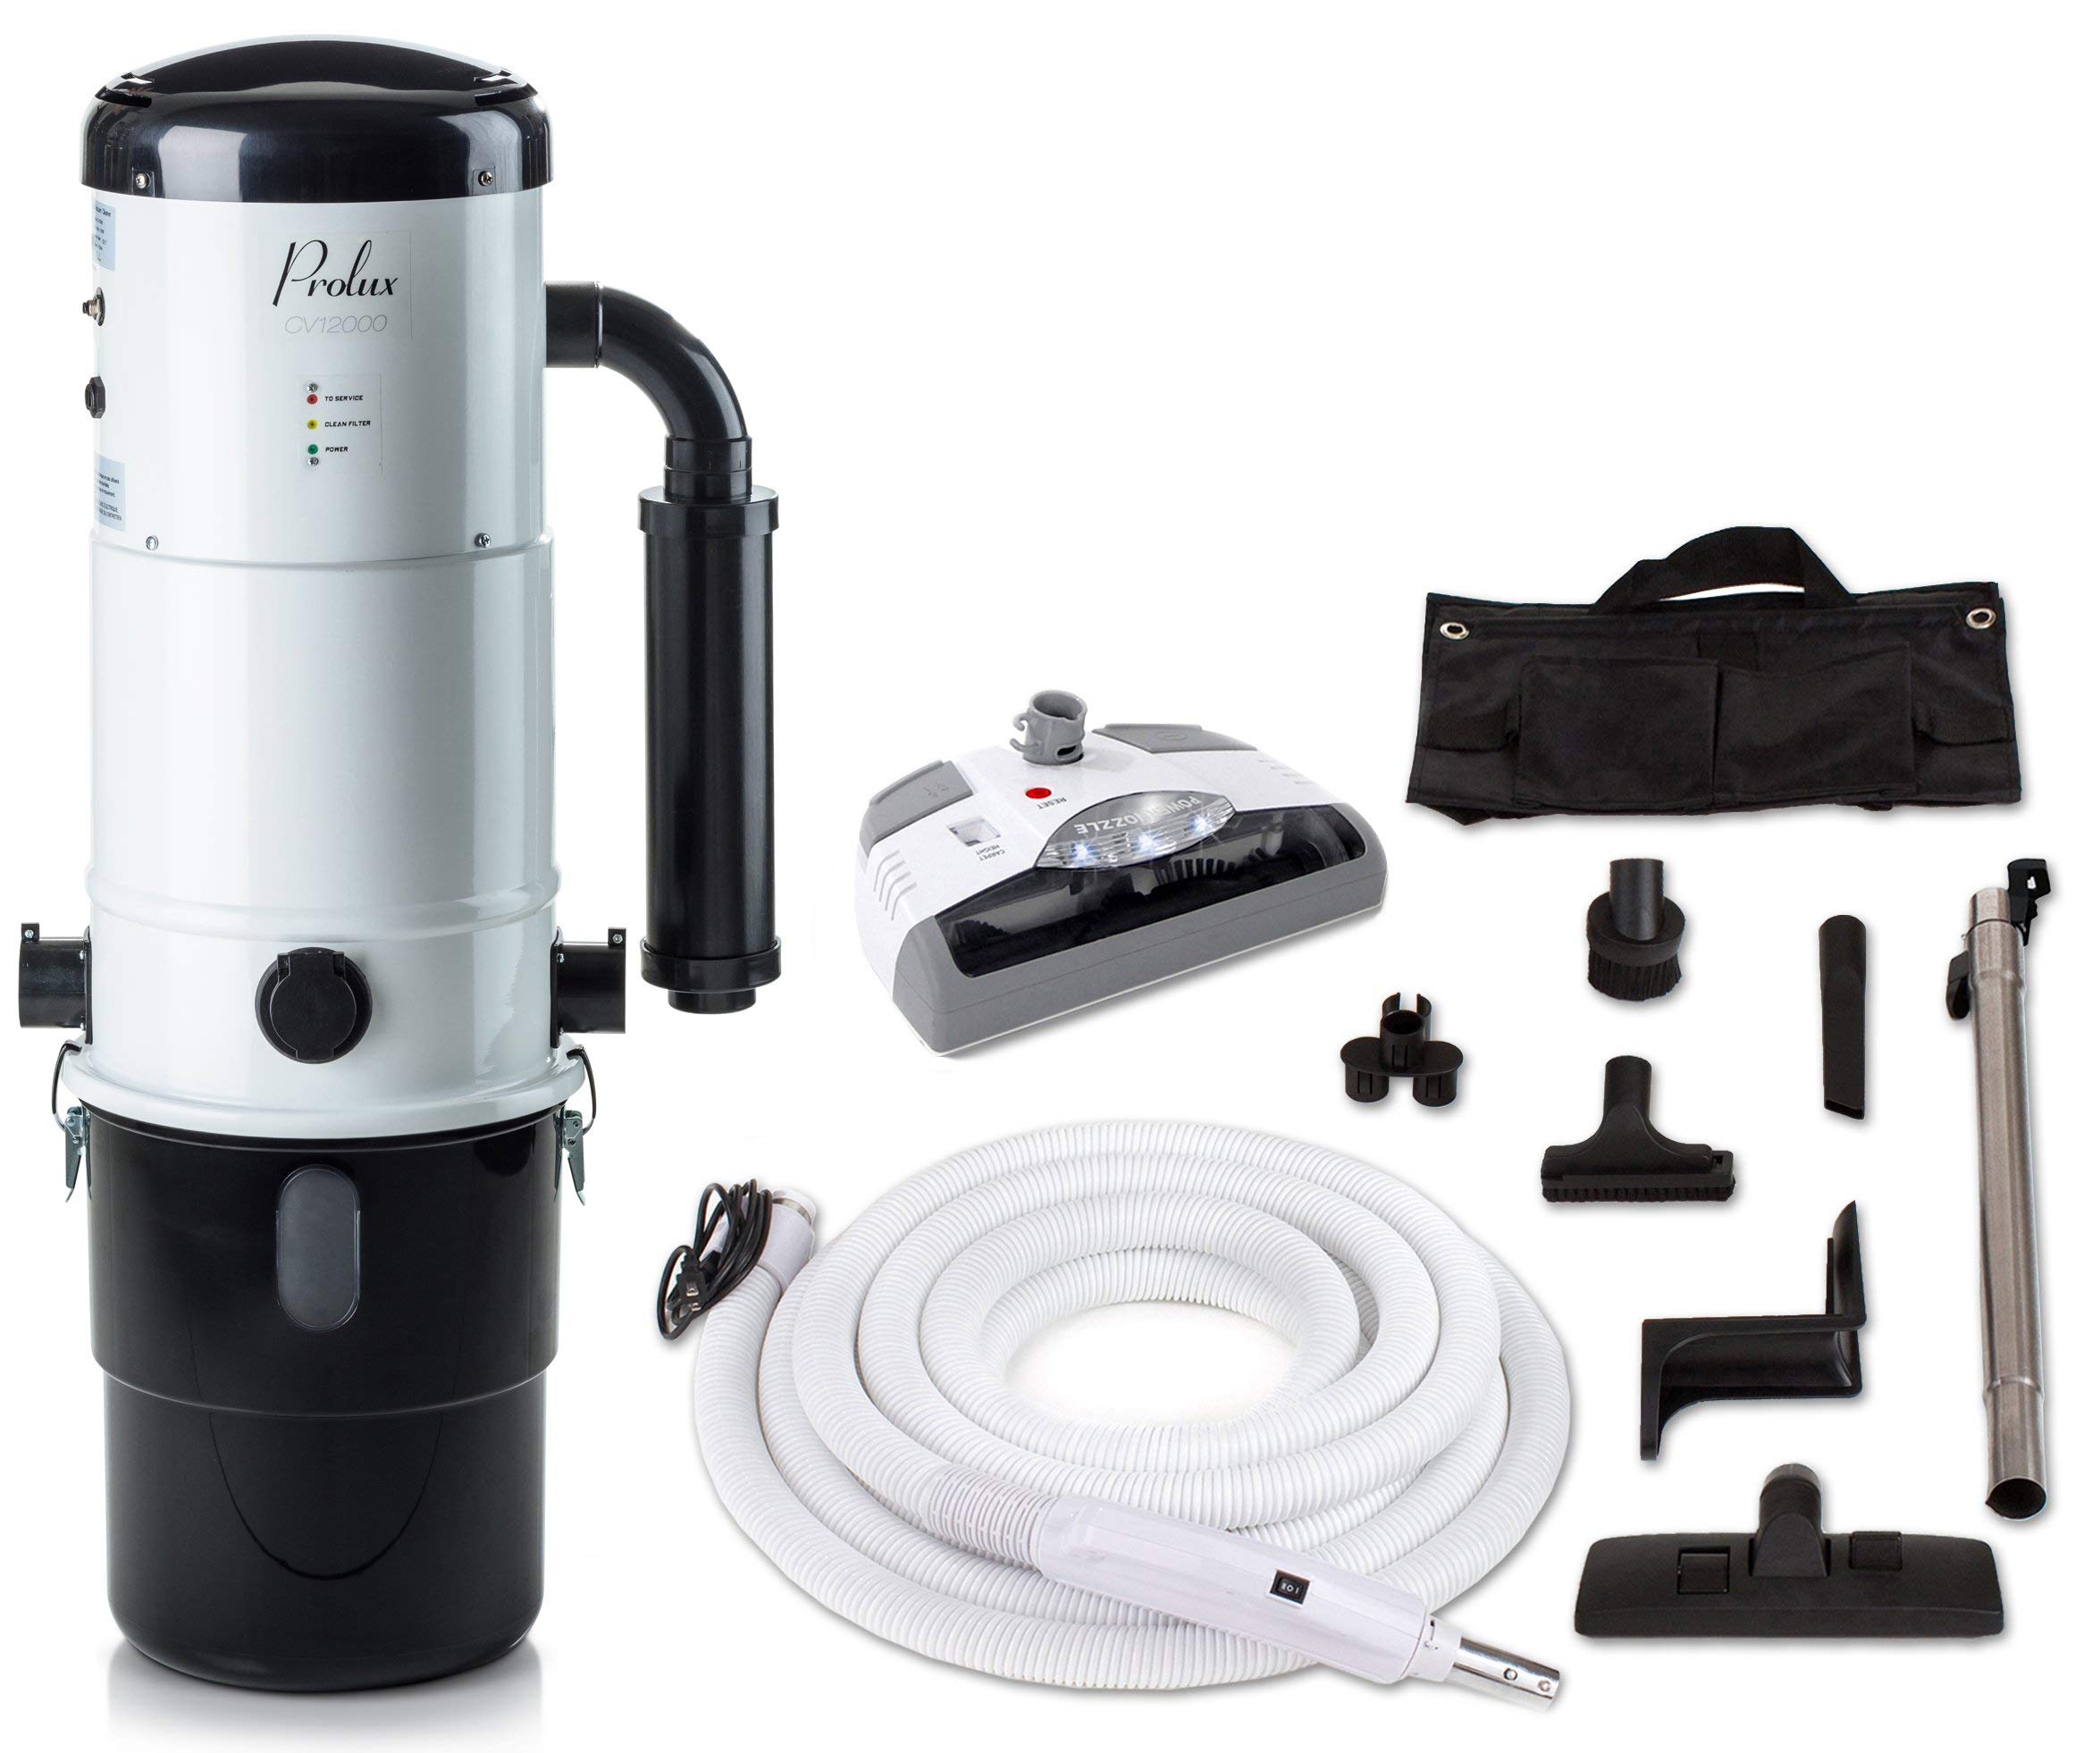 Prolux CV12000 Central Vacuum Unit System with Electric Hose Power Nozzle Kit and 25 Year Warranty by Prolux